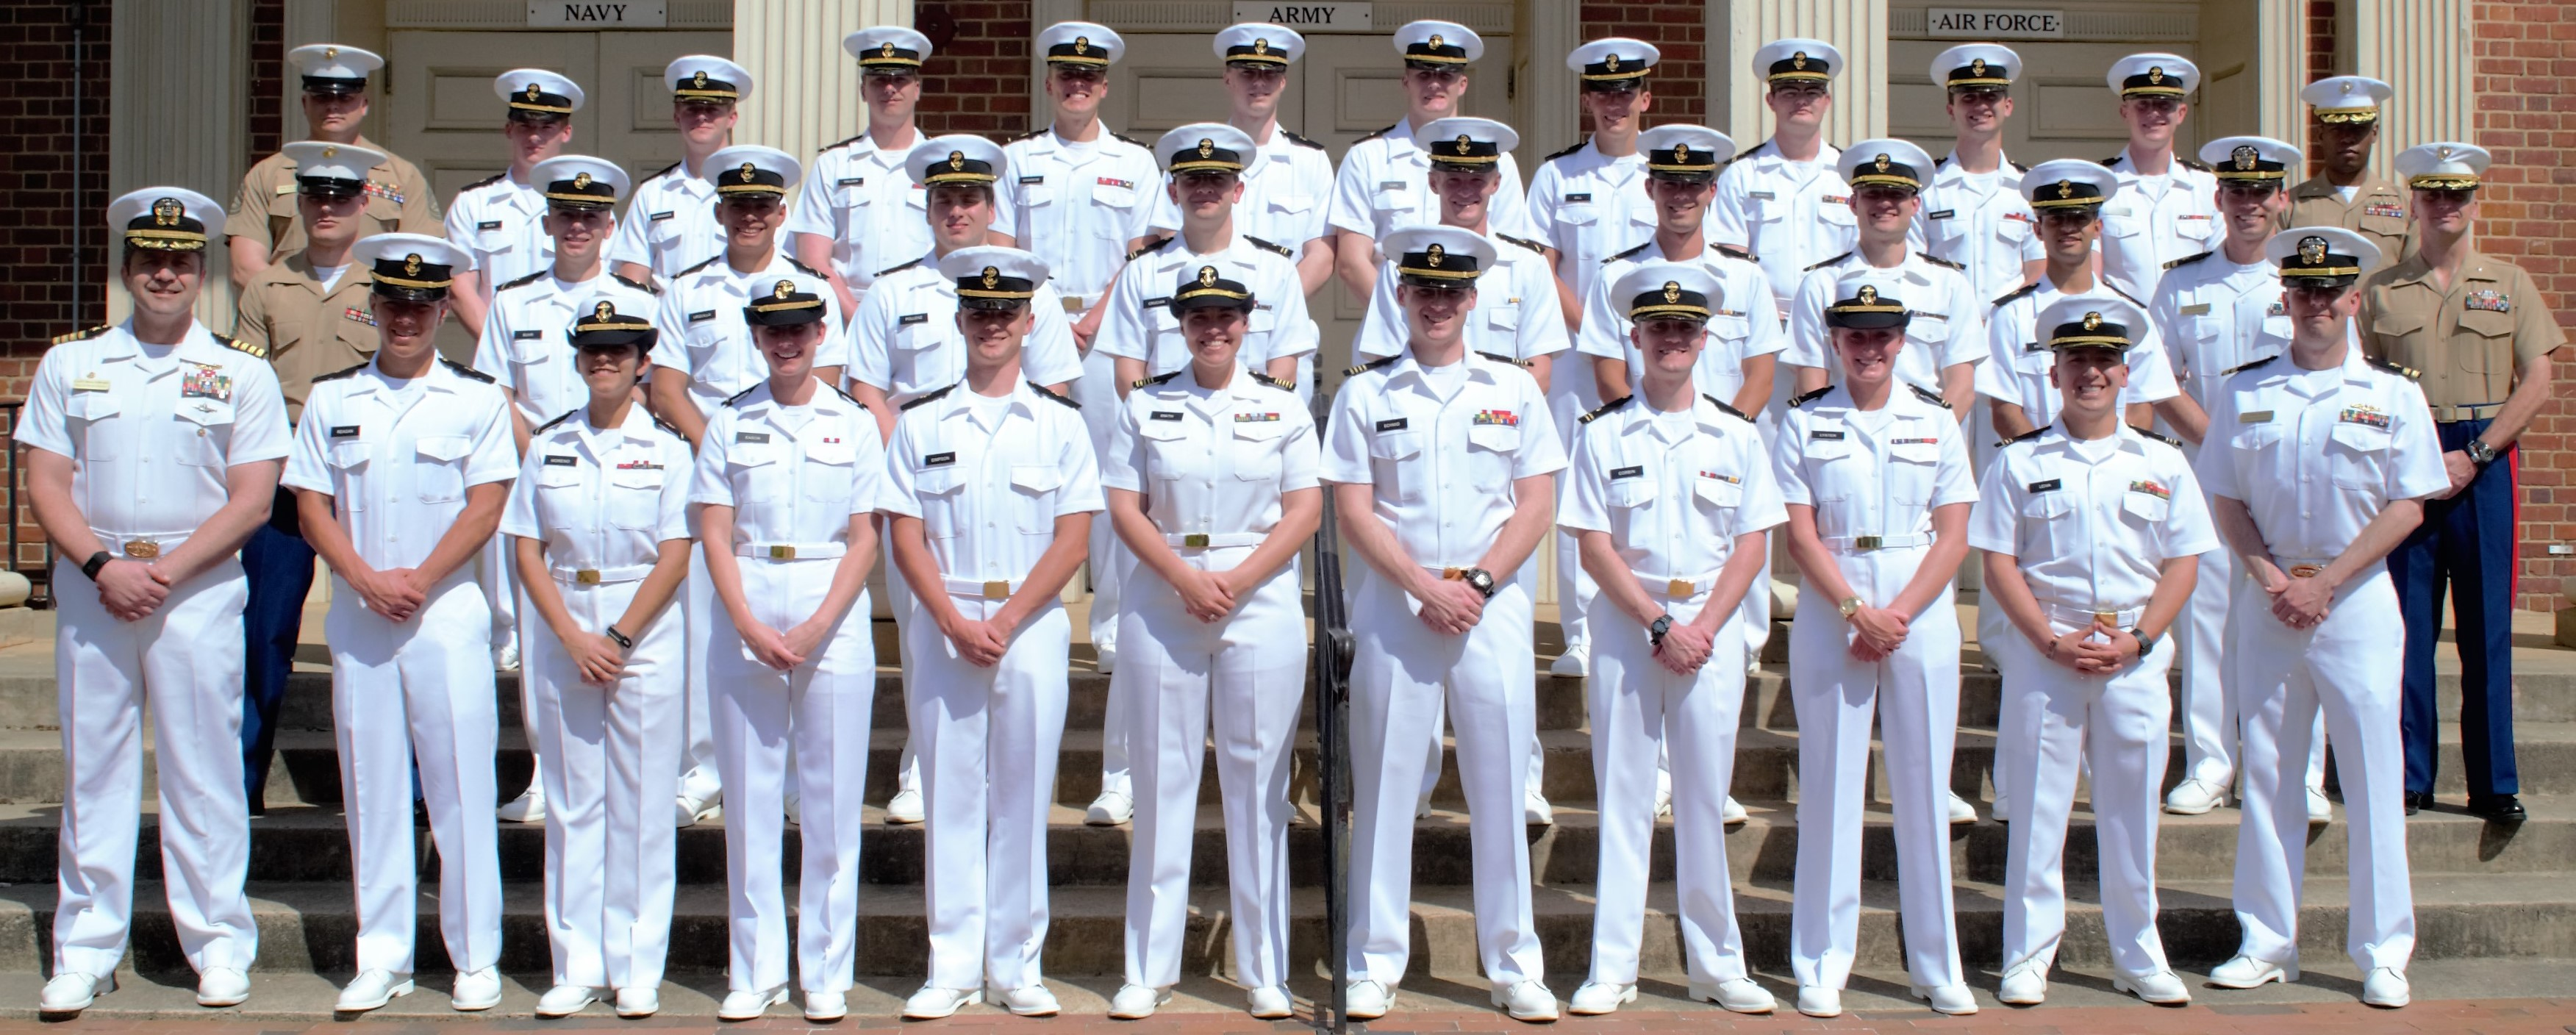 Program Overview - UNC NAVAL ROTC